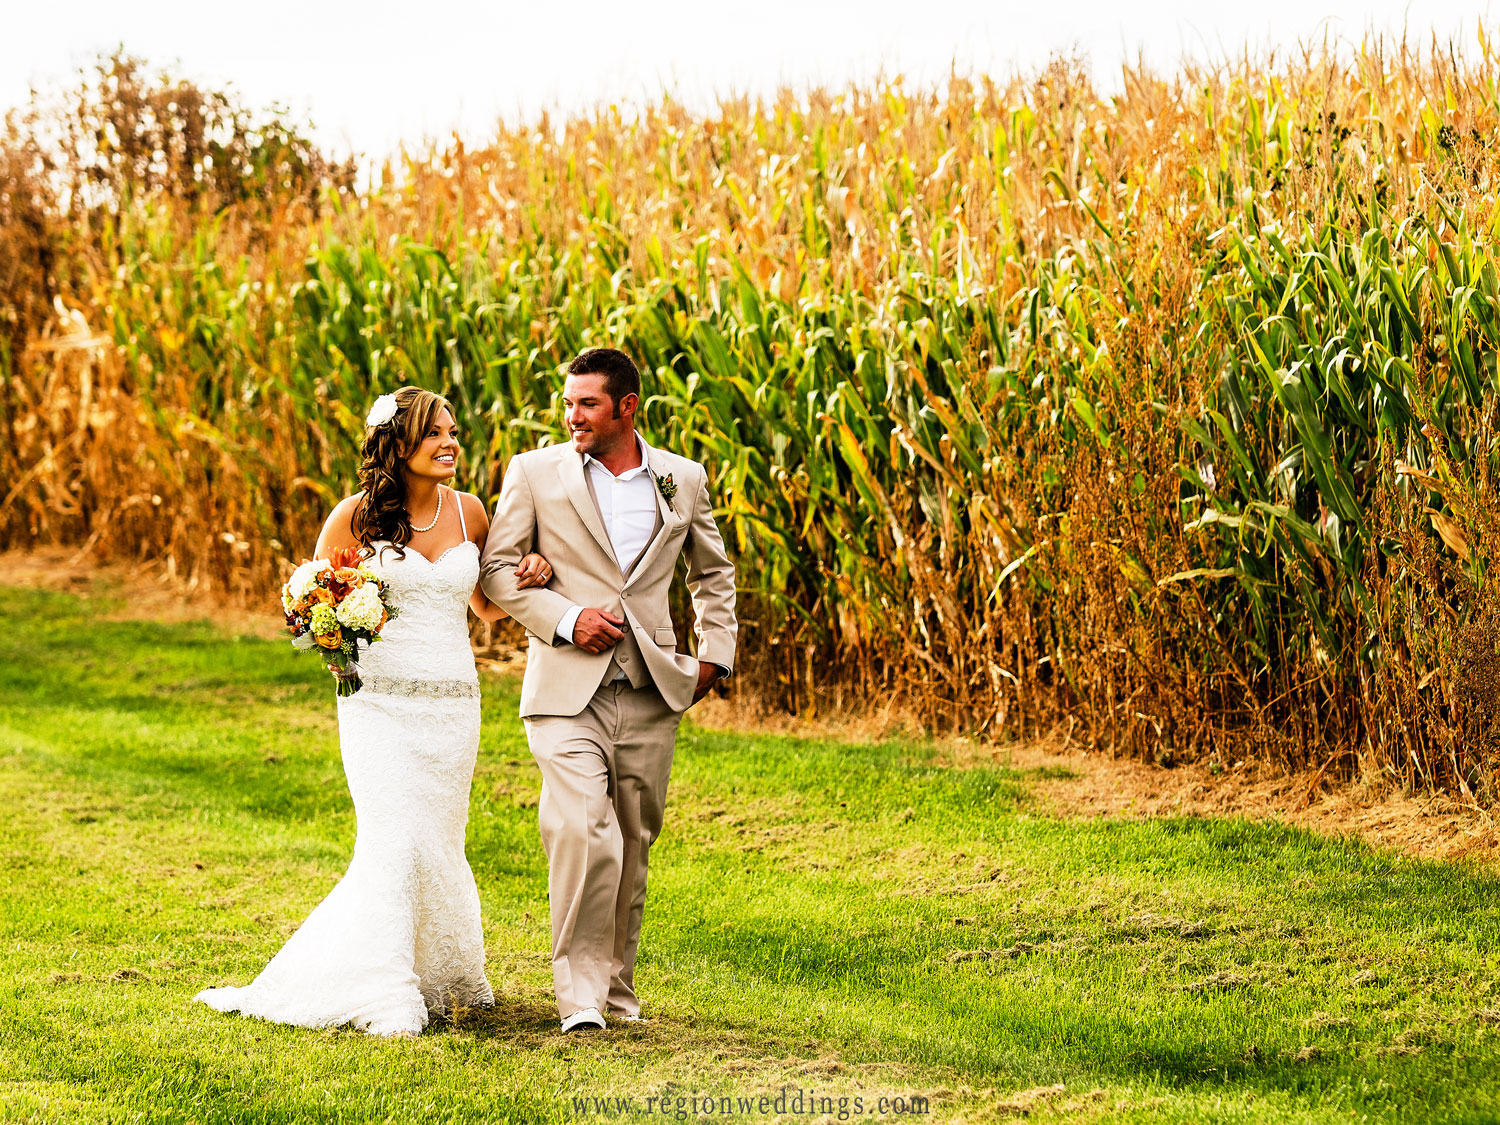 The bride and groom walk amongst the Indiana corn.